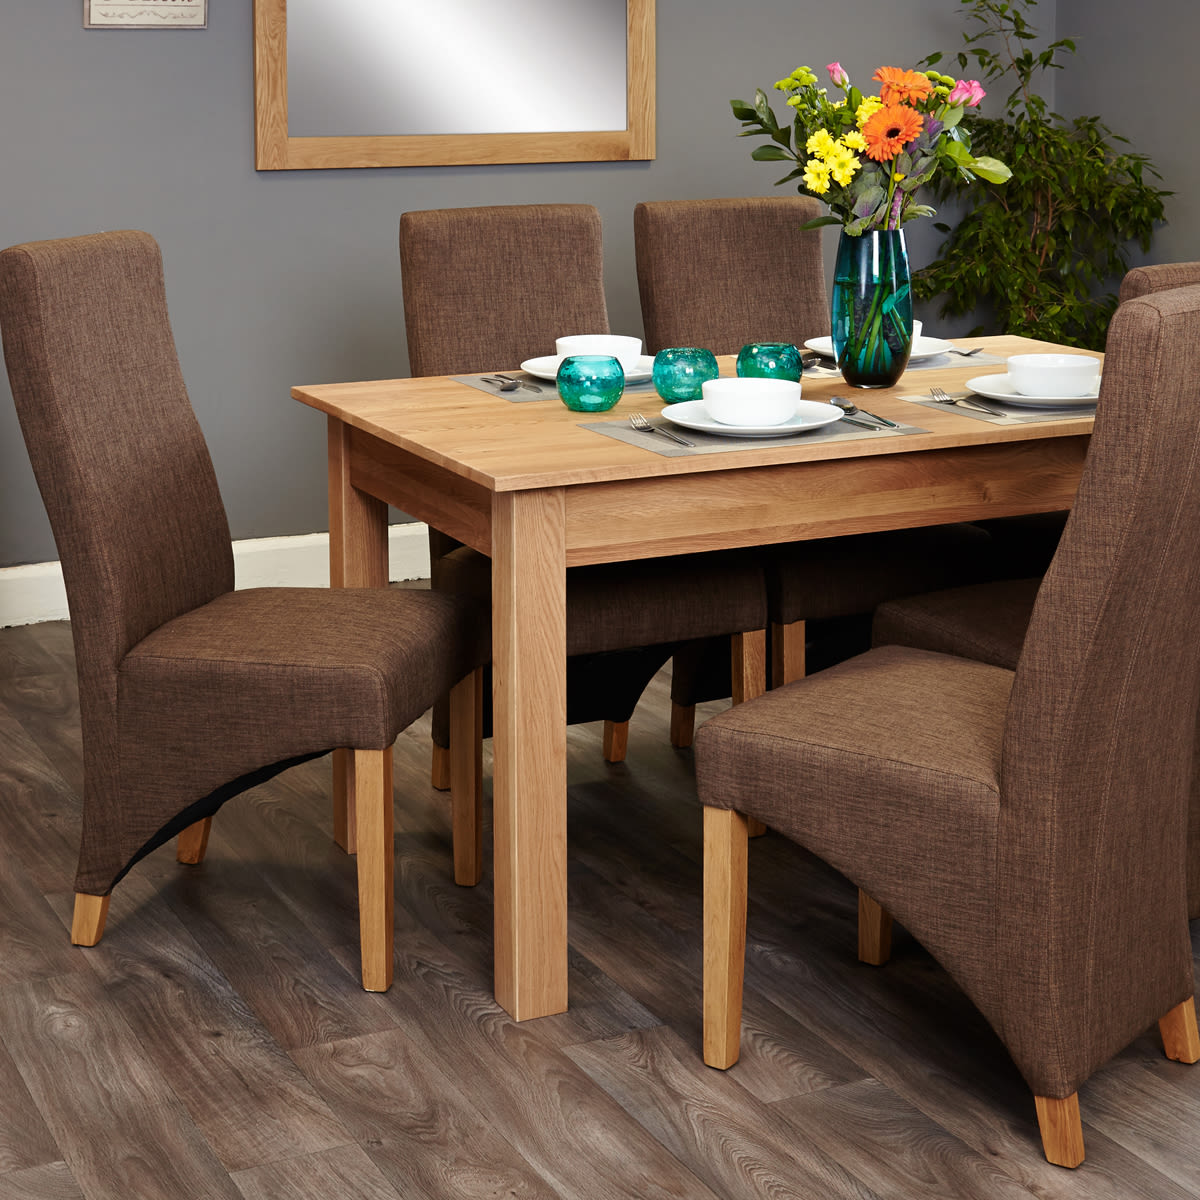 mobel oak 4 6 seat table and 6 hazelnut chairs was 1 034 00 now 689 00 wooden furniture store